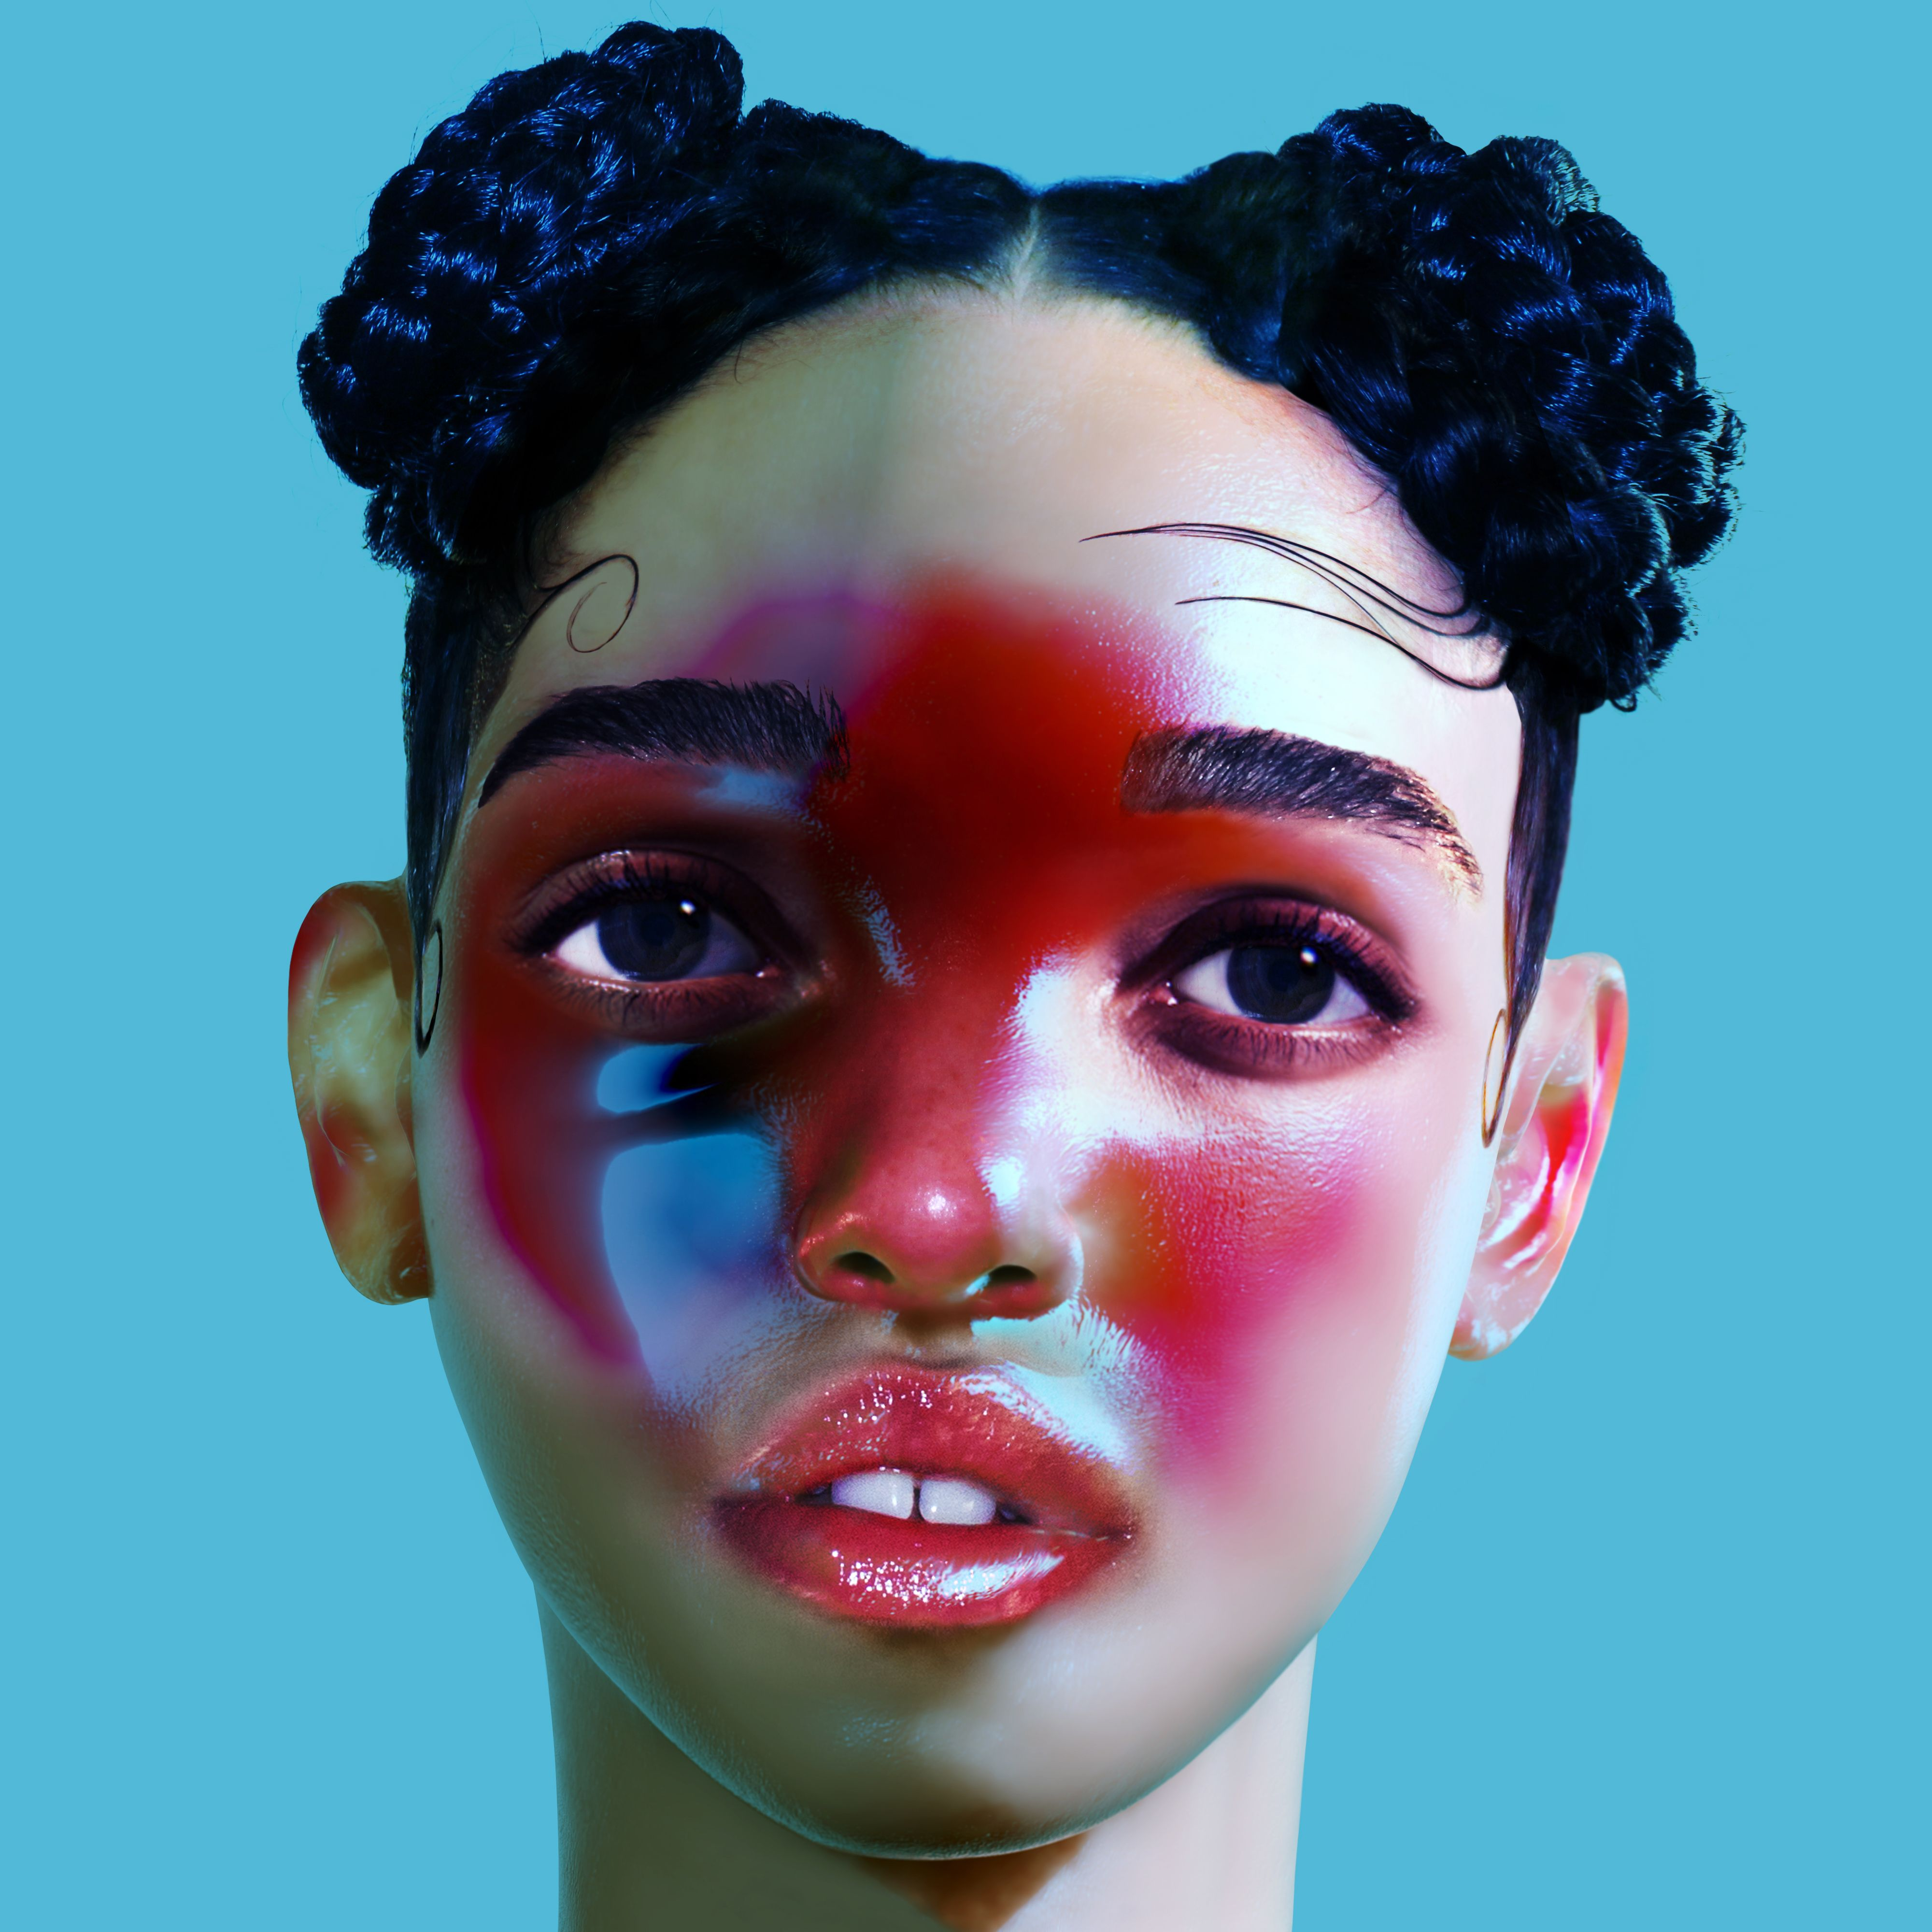 FKA Twigs - LP1 album cover